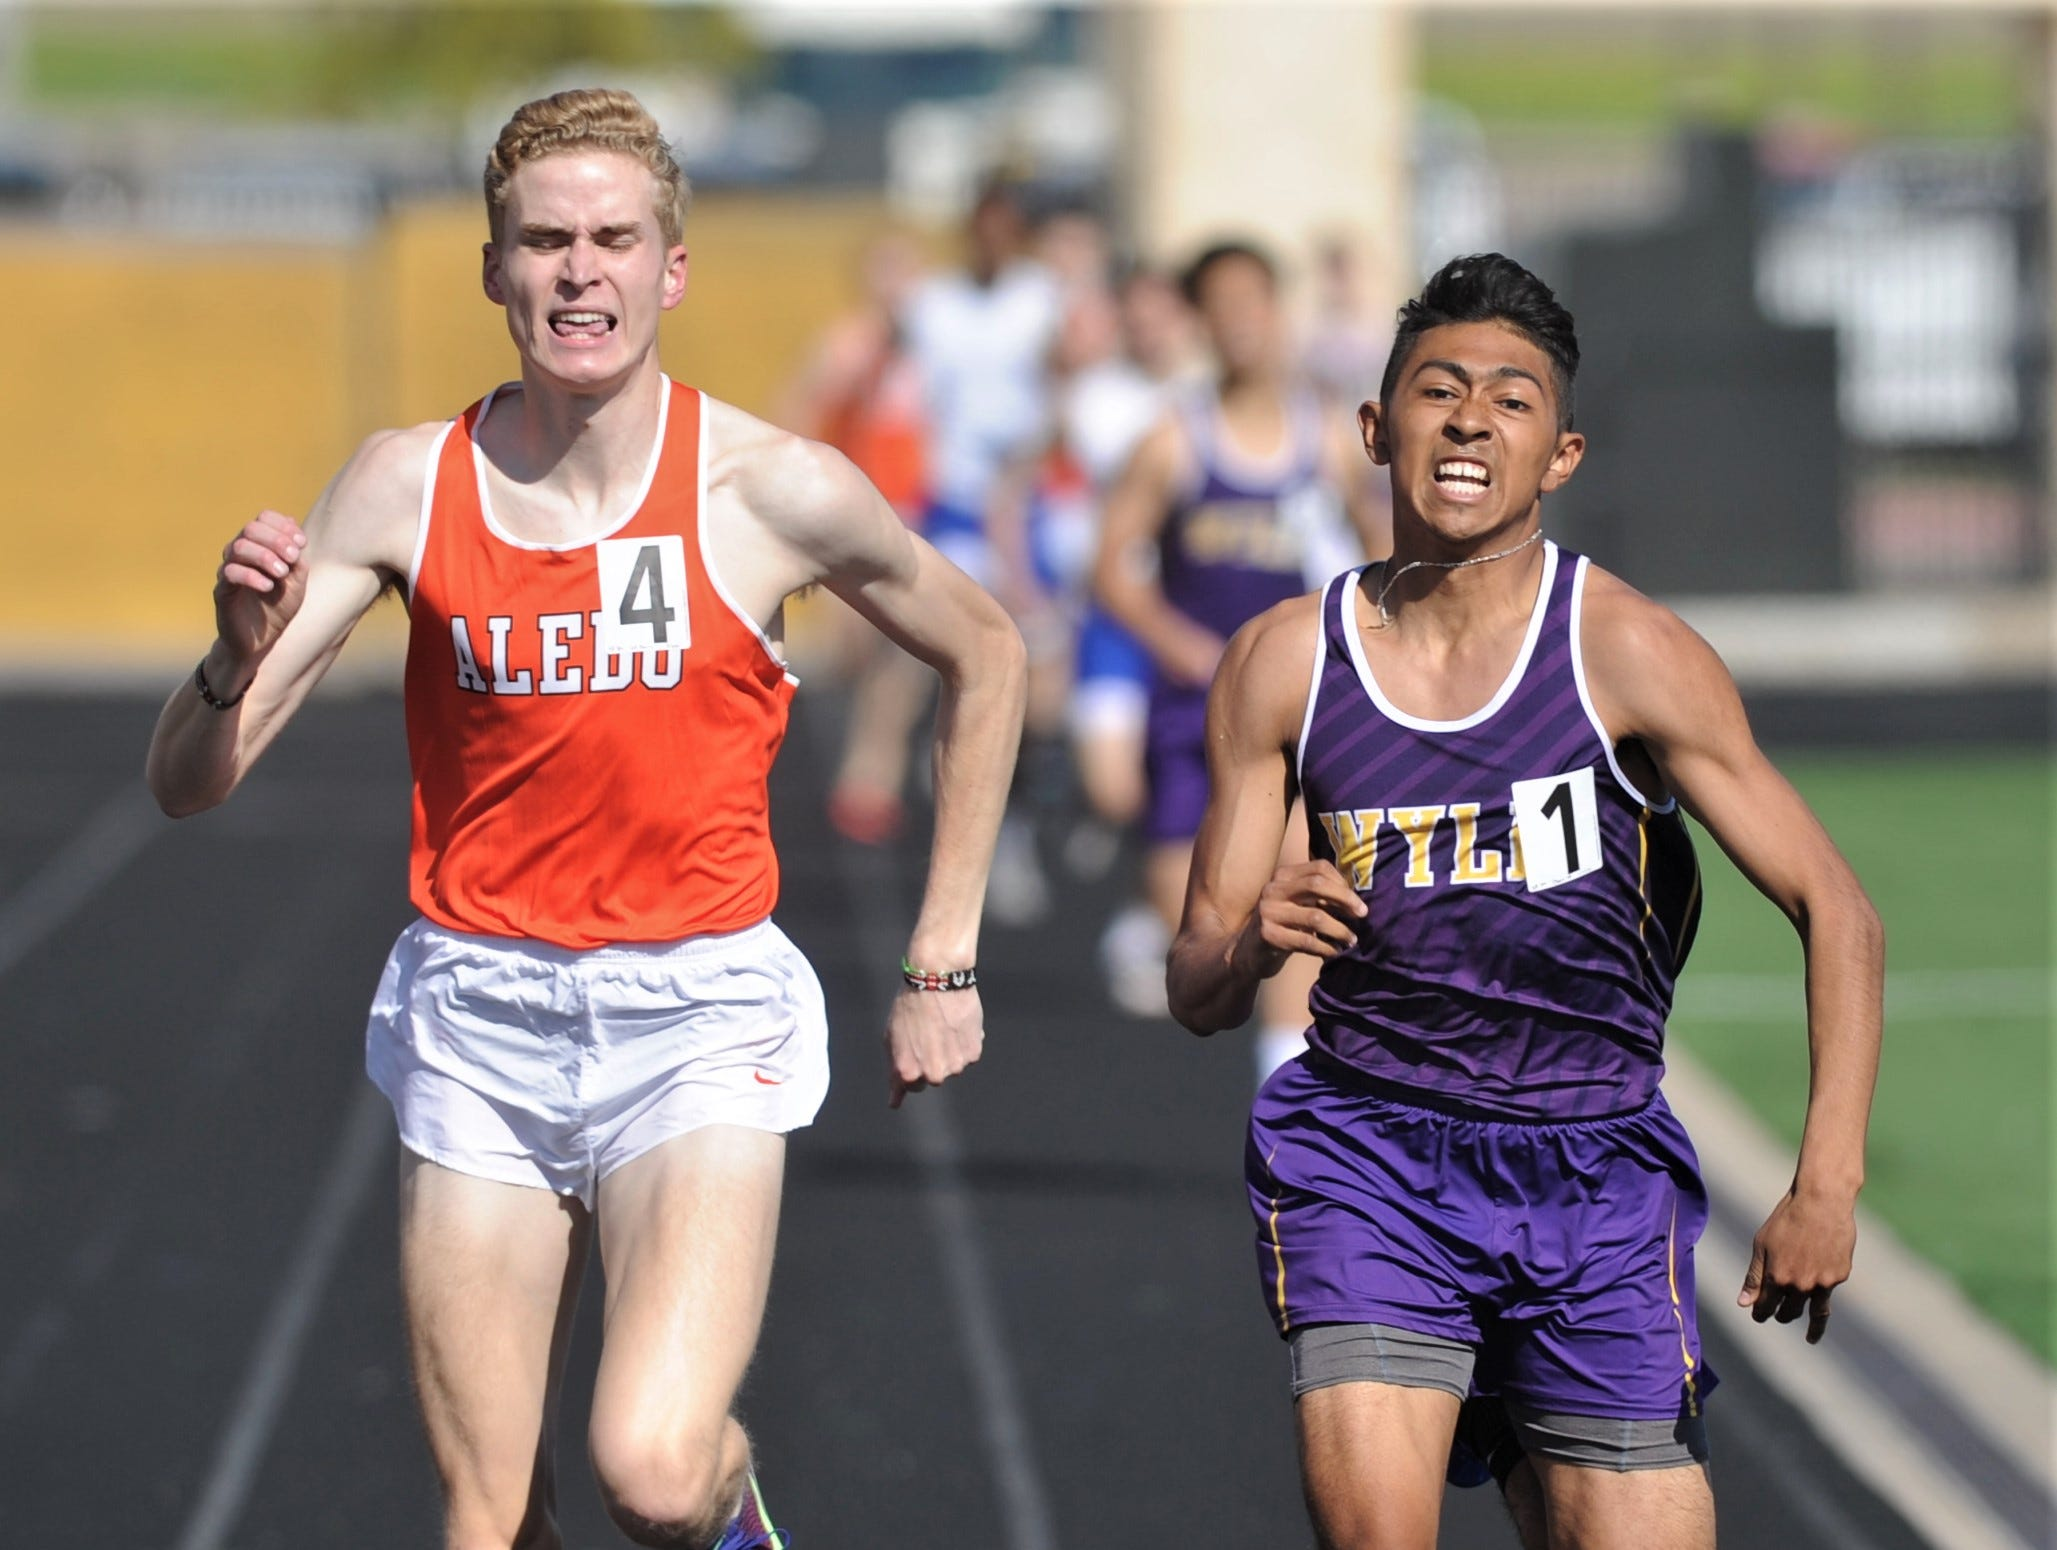 Wylie's Victor Charro, right, battles Aledo's Graydon Morris for the 800 meter title at the District 4-5A track and field meet on Thursday, April 3, 2019, at Aledo's Bearcat Stadium. Morris edged Charo for the title, running a 1:57.28 to Charo's 1:57.41.